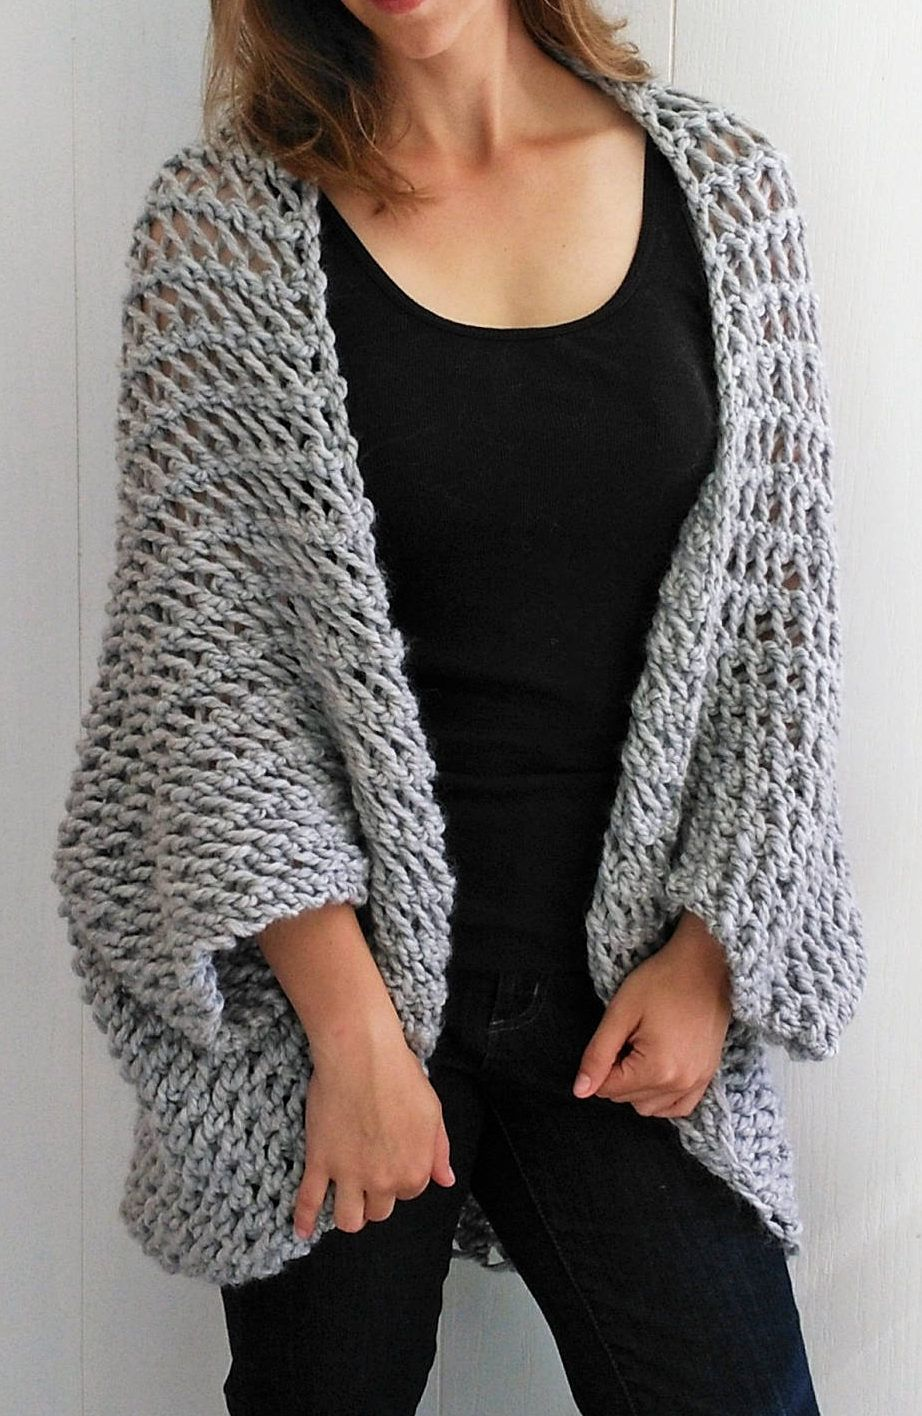 Knitting Cardigan Design : Knitting pattern for easy cocoon cardigan